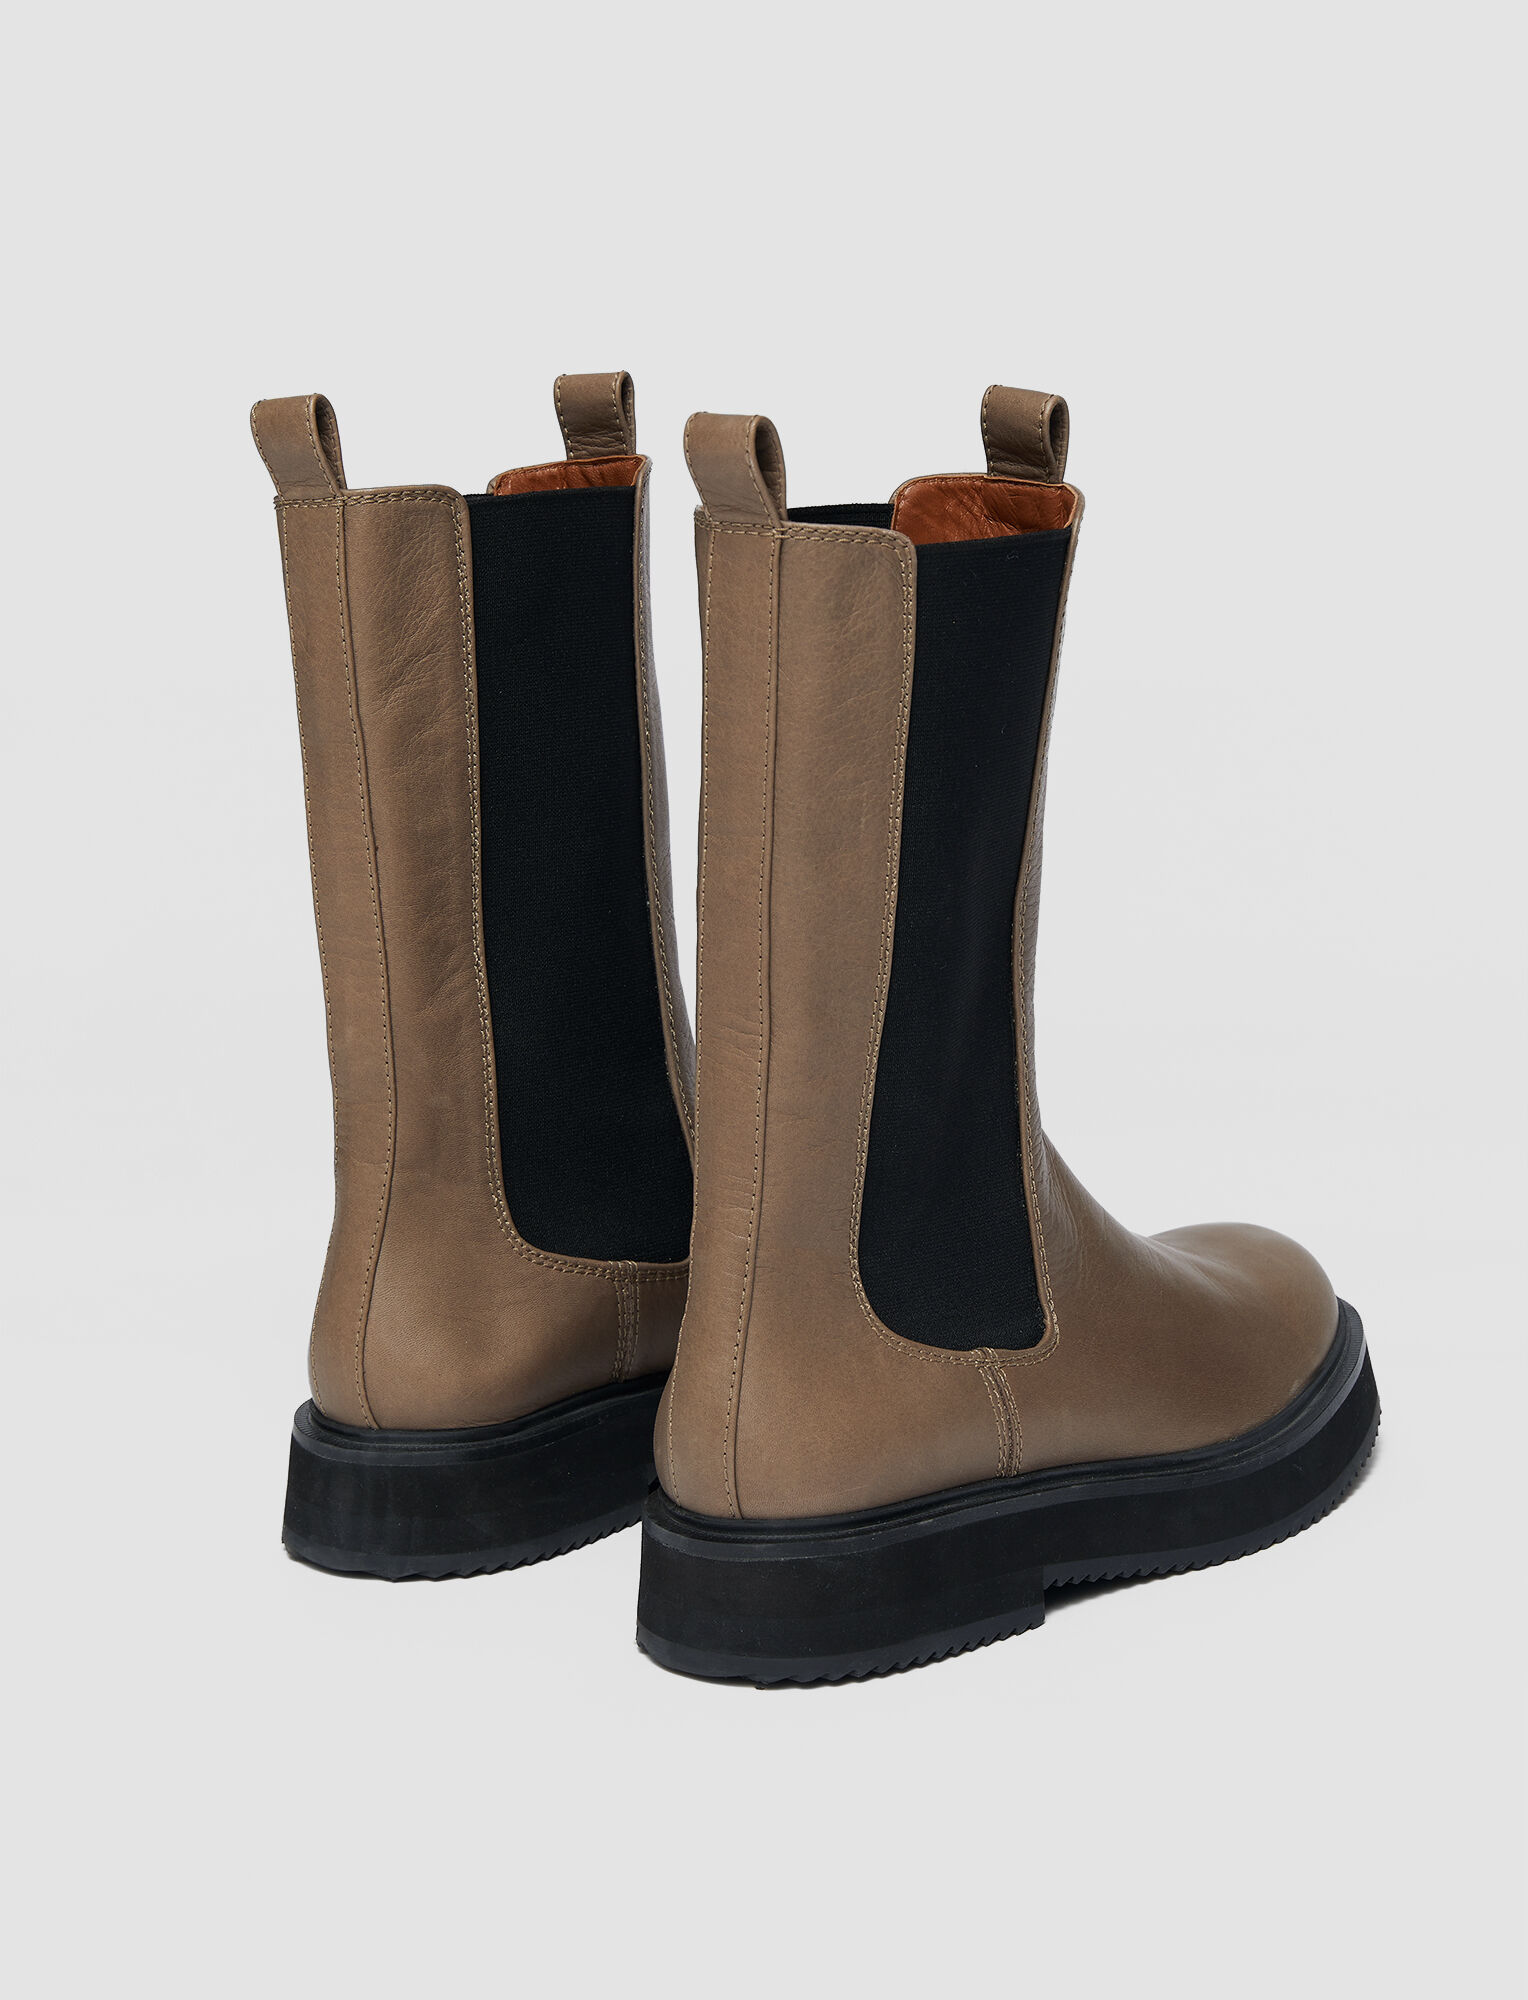 Joseph, Leather British Chelsea Boots, in TAUPE